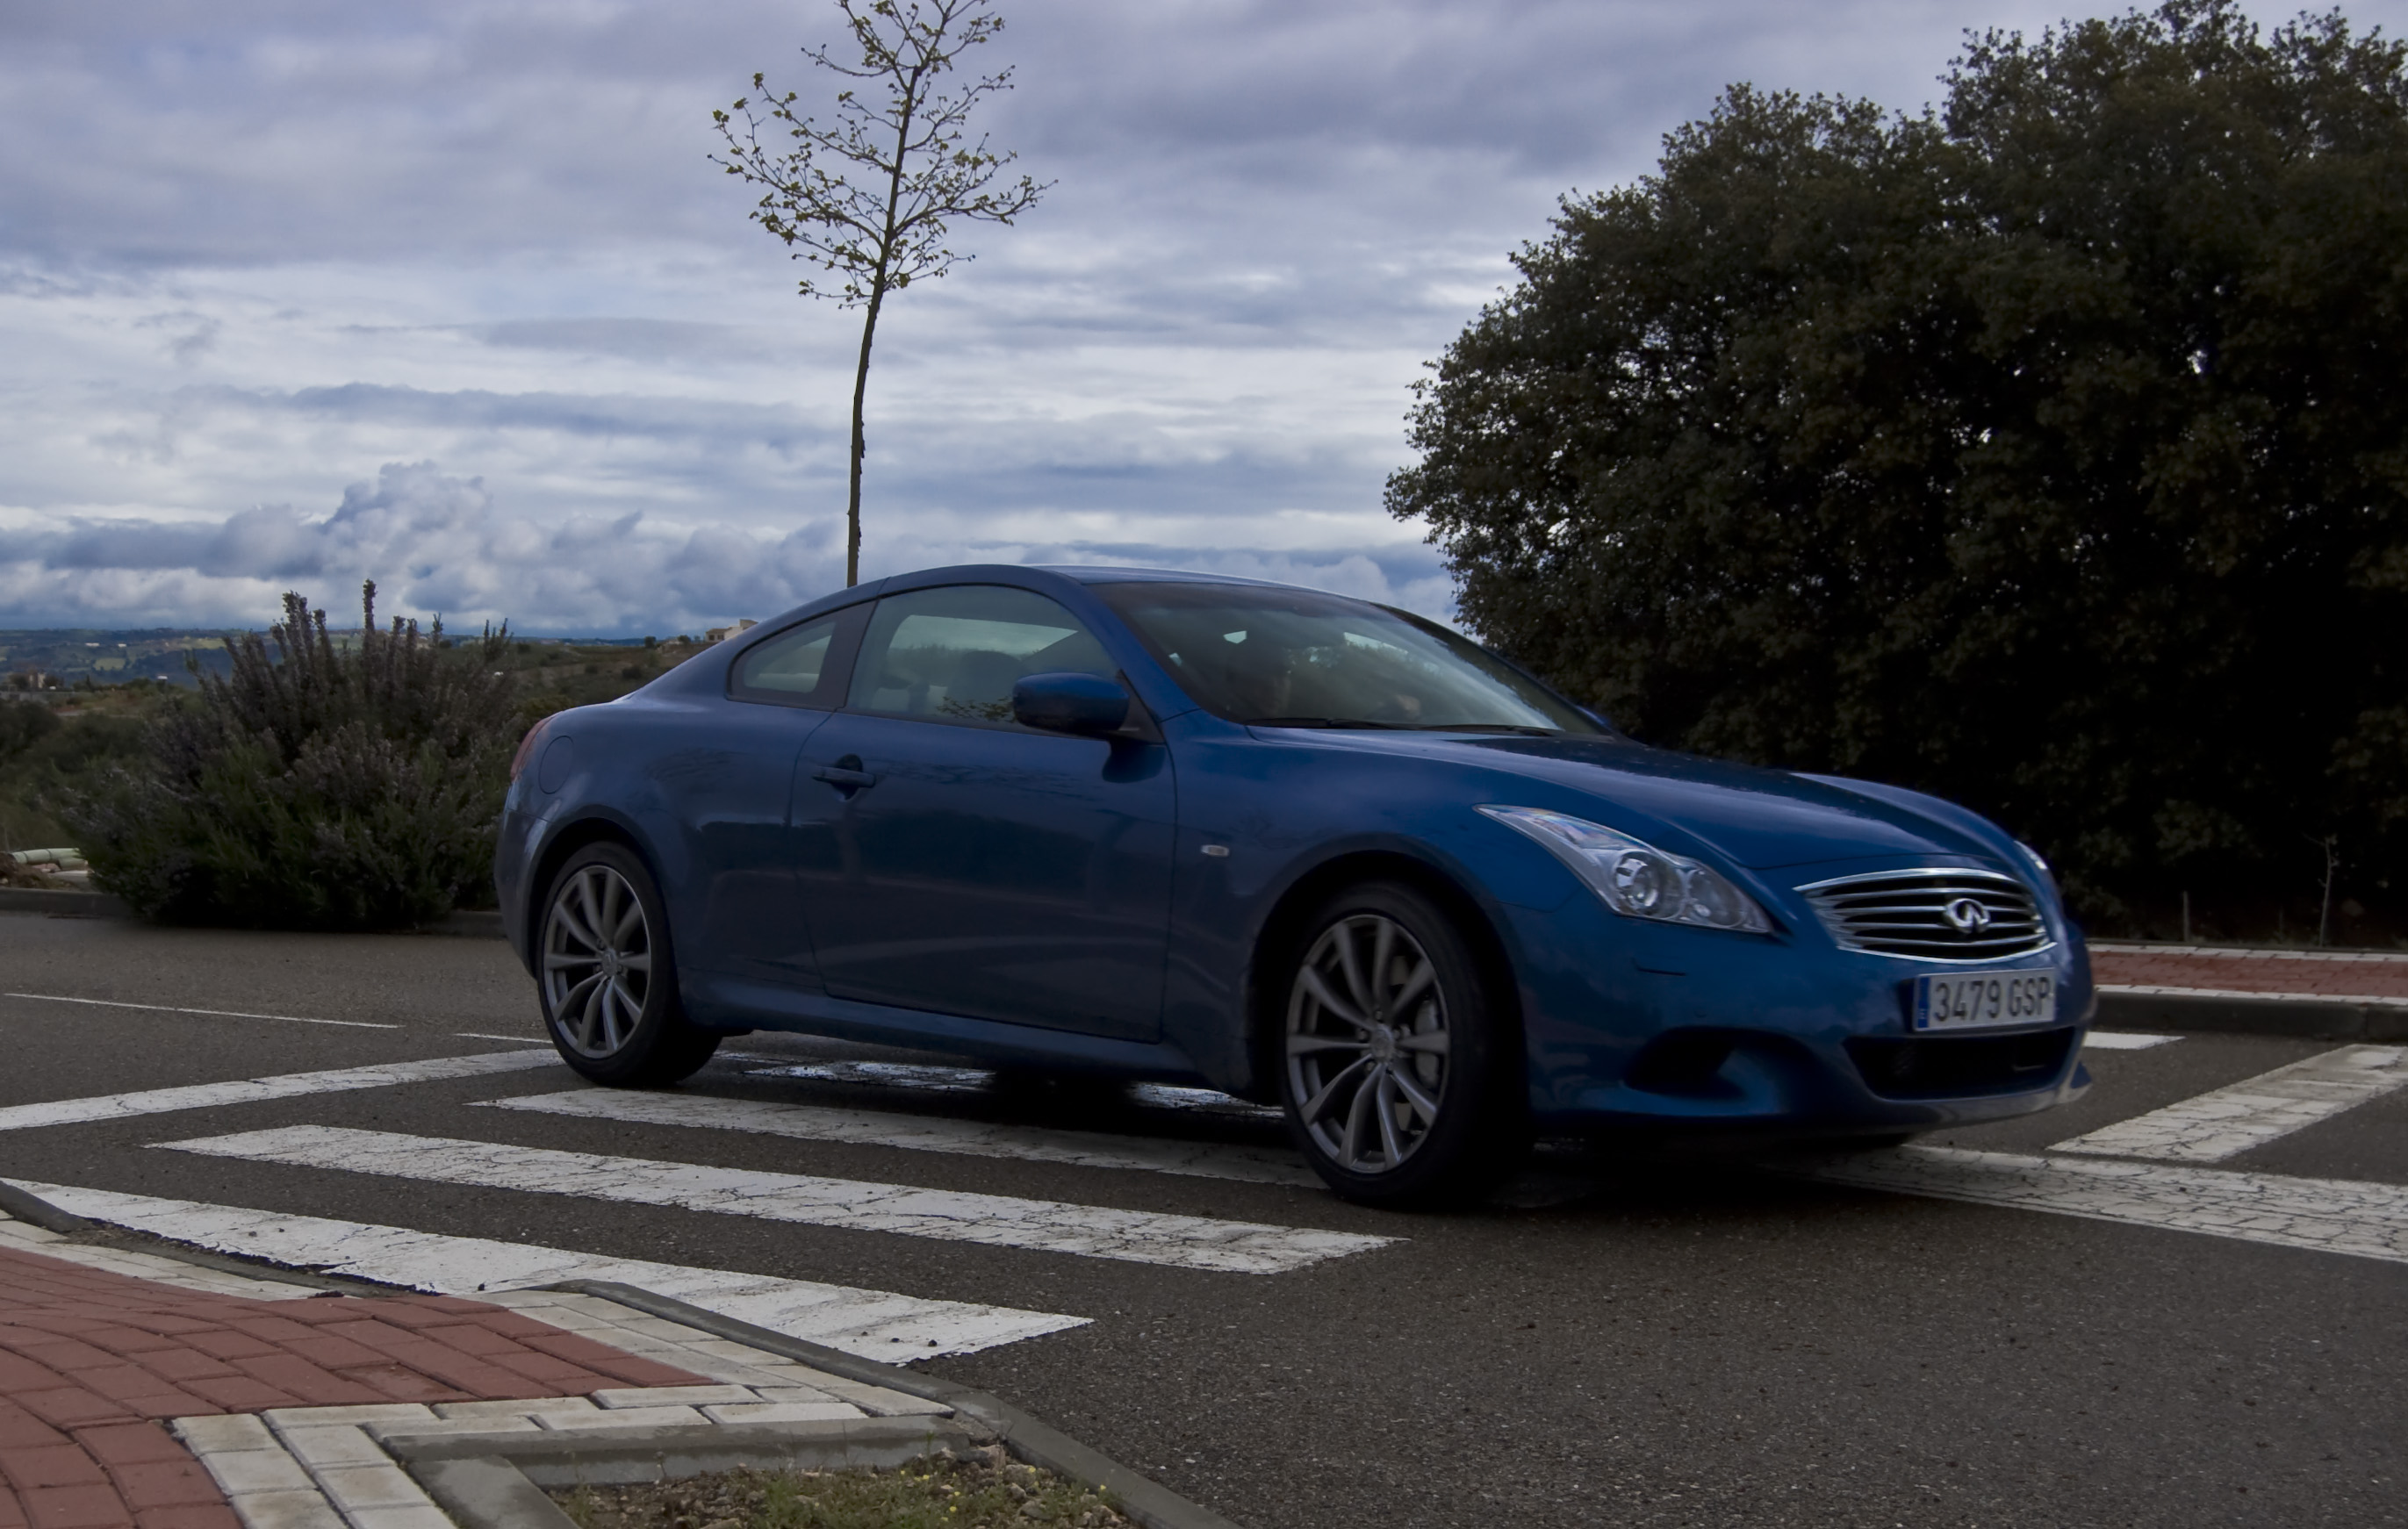 100 ideas 2010 g37 coupe specs on ourustours infiniti gseries q40q60 wikiwand vanachro Images